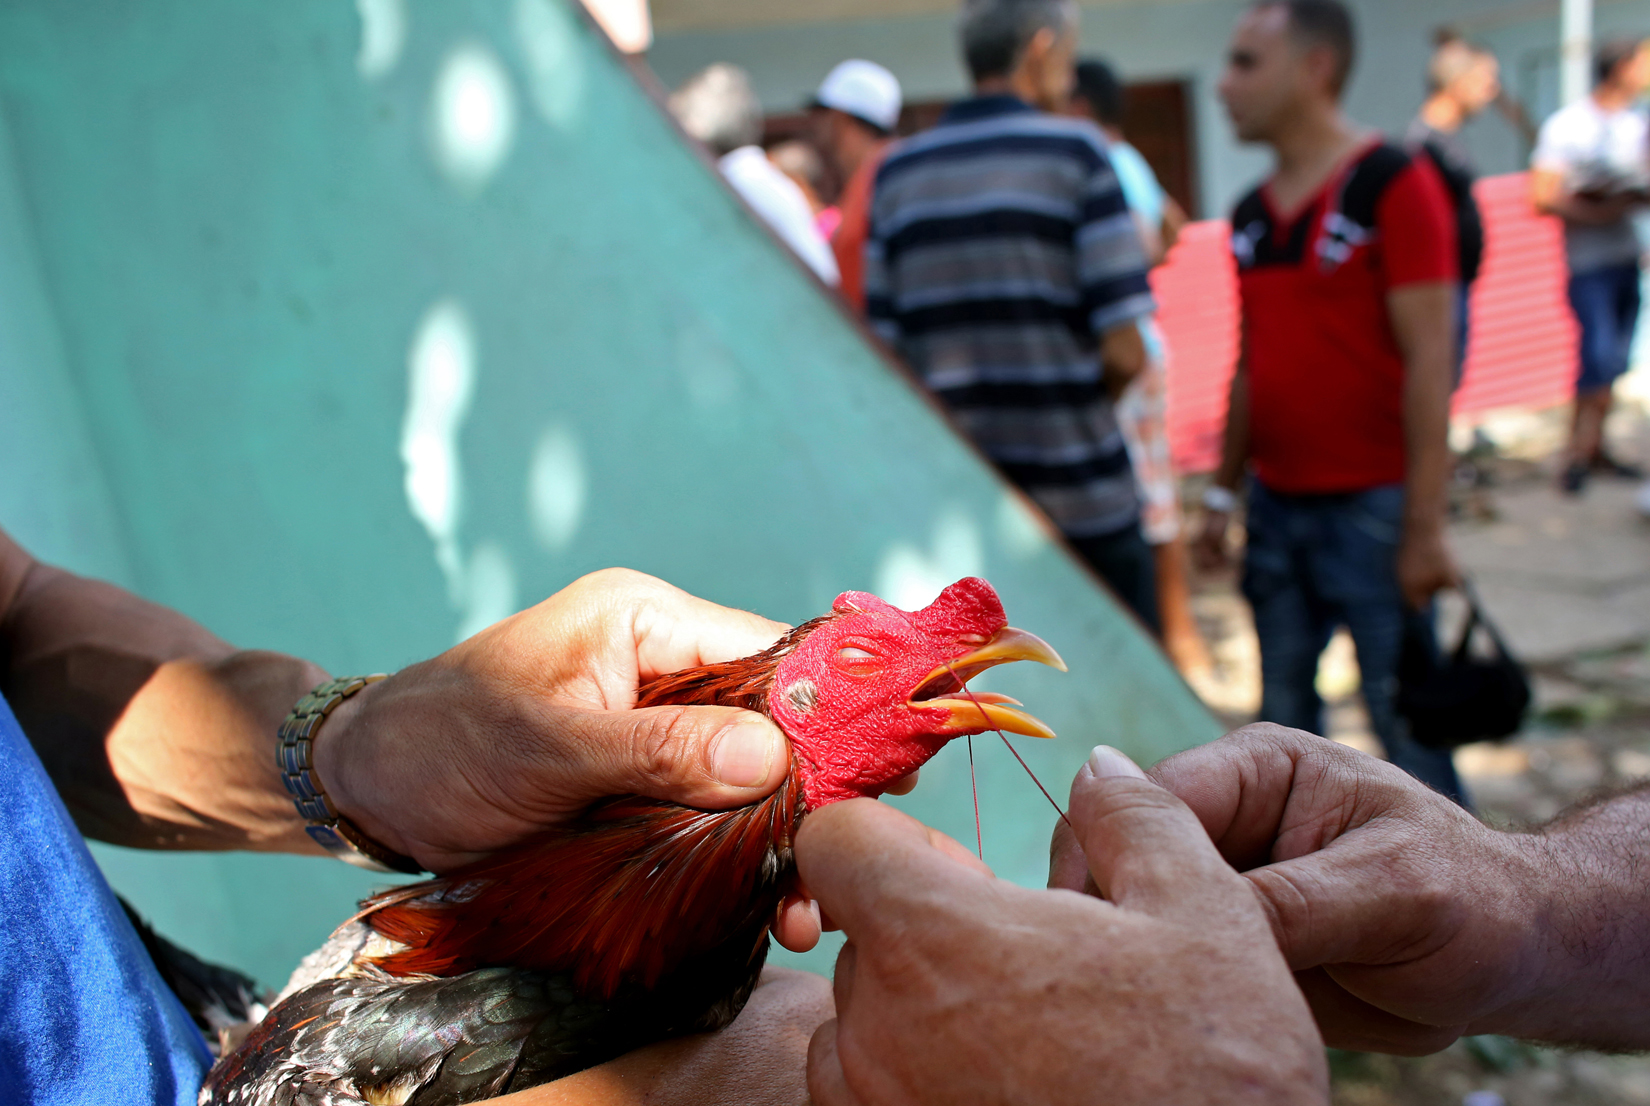 A chicken's beak is tied shut to prevent premature pecking before a cock-fighting event at a sports arena on April 18, 2015 in Managua, Cuba. Cock-fighting in Cuba is in the gray area of legal - state-run events such as this (non-private) functions are permitted, but not monetary betting. This is in part due to lingering bitterness over the control U.S. mafia used to exercise over casinos and prostitution in pre-revolutionary Cuba, the income from which allowed crime lords a certain level of interference in the country's political matters. Cuba, a place of much recent conversation, is a country whose politics and way of life parallel much of my childhood in Bulgaria. This is 2015's continuation to my project on democracy + communism, started last year on the 25th anniversary of the fall of the Berlin Wall - the event that gave opportunity to Eastern Europeans like me to immigrate to the Western world. These are the ways in which Cuba has transported me to pre- and post-1989 Bulgaria.